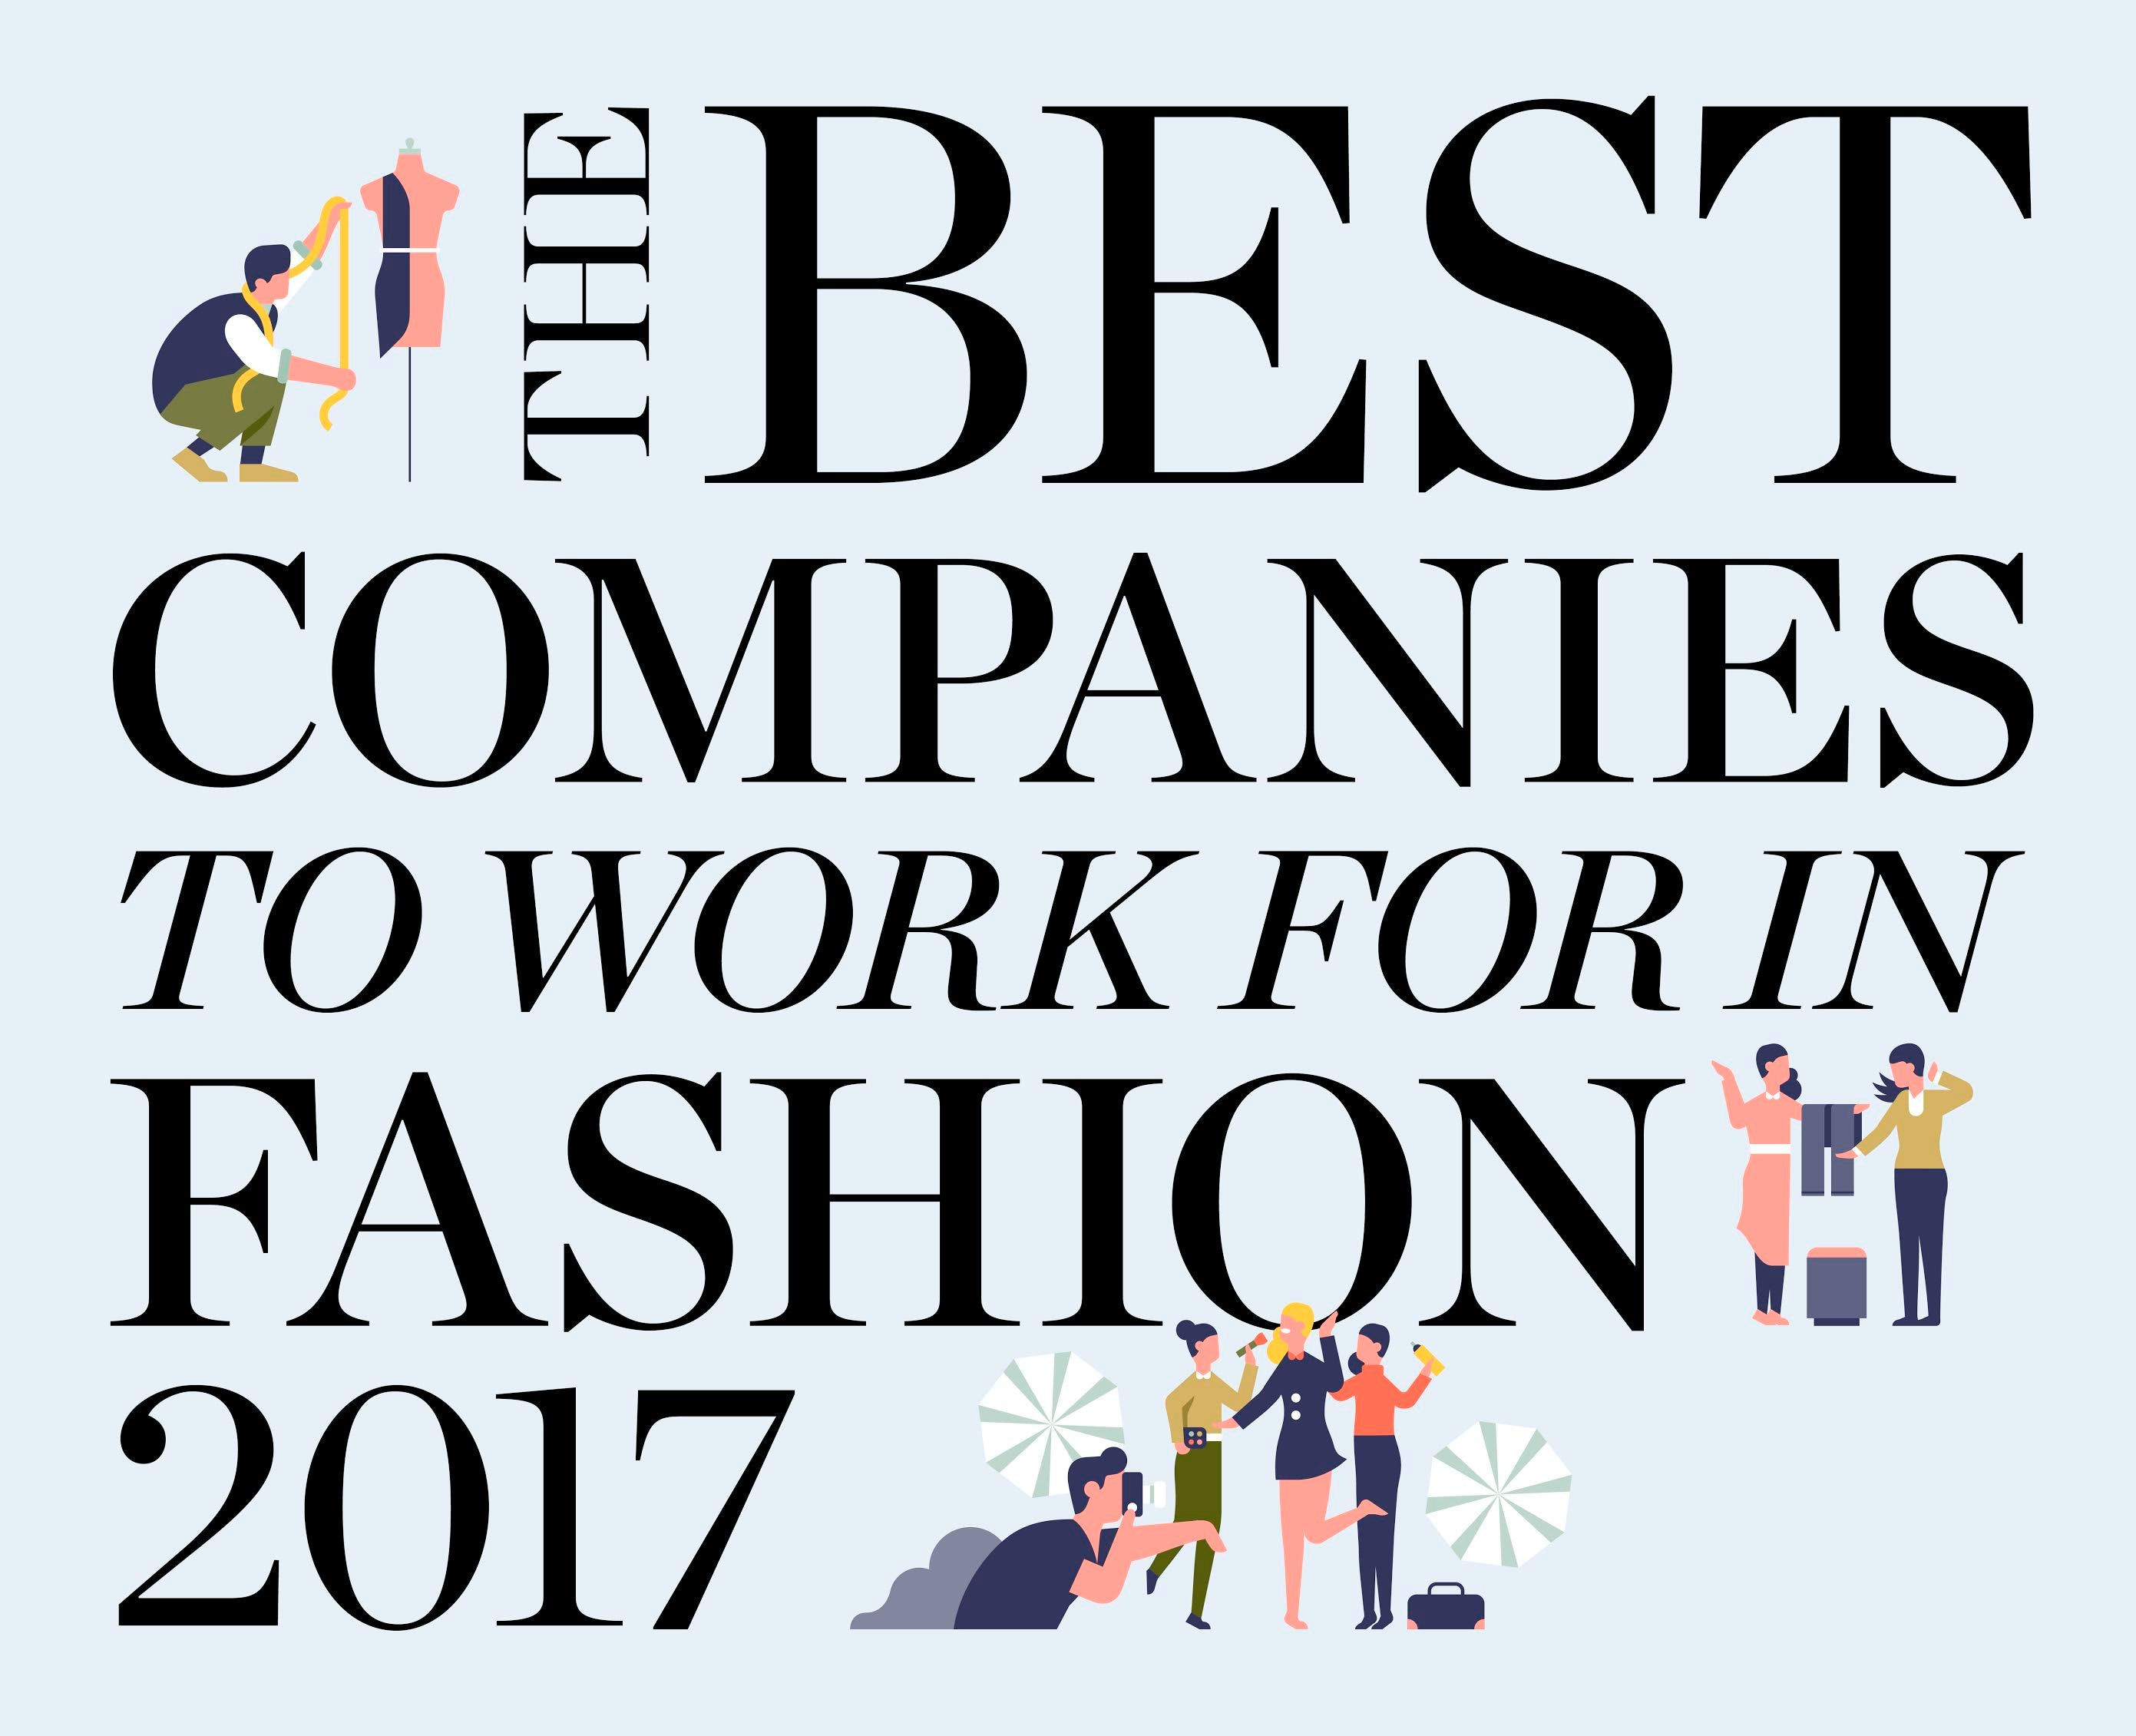 The 16 Best Companies to Work for in Fashion 2017